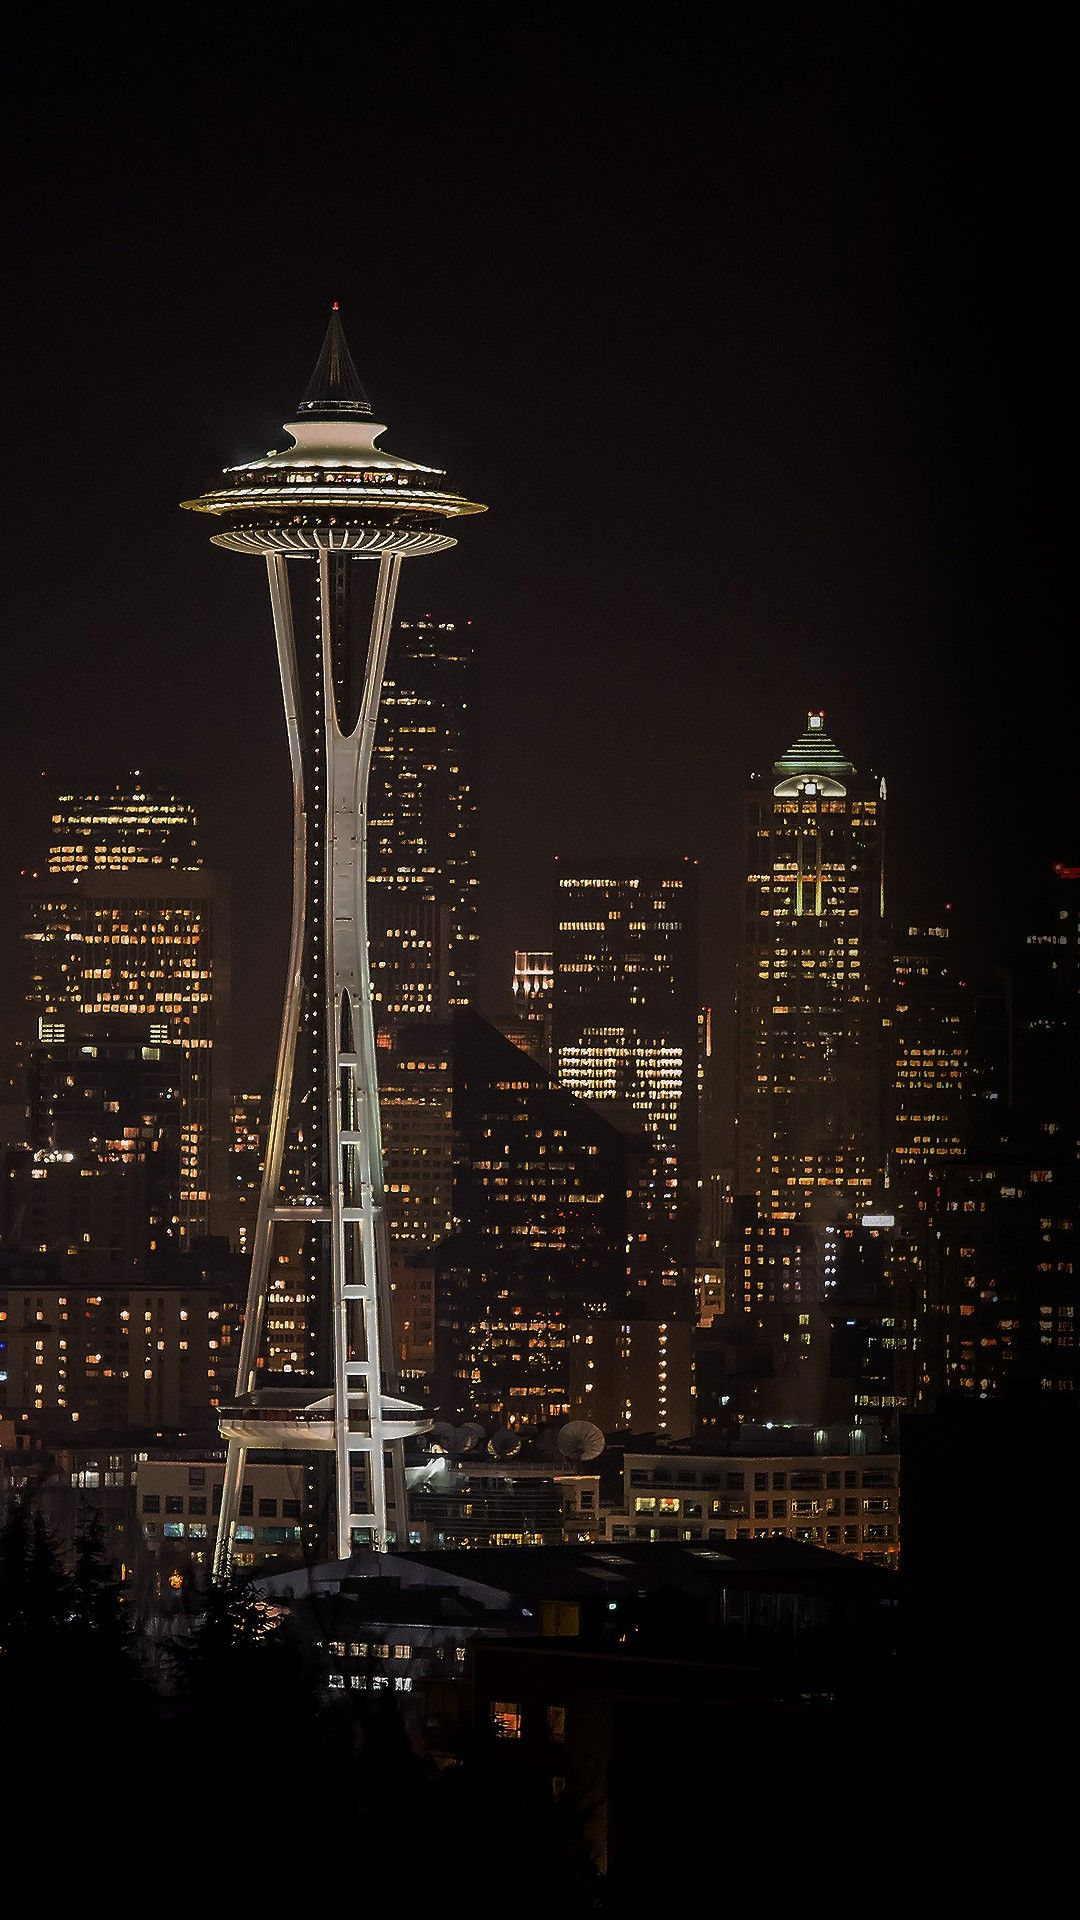 Seattle Space Needle Night City Skyline Hd Wallpaper Check More At Https Phonewallp Com Seattle Space Needle Night C Seattle Wallpaper Seattle City Wallpaper